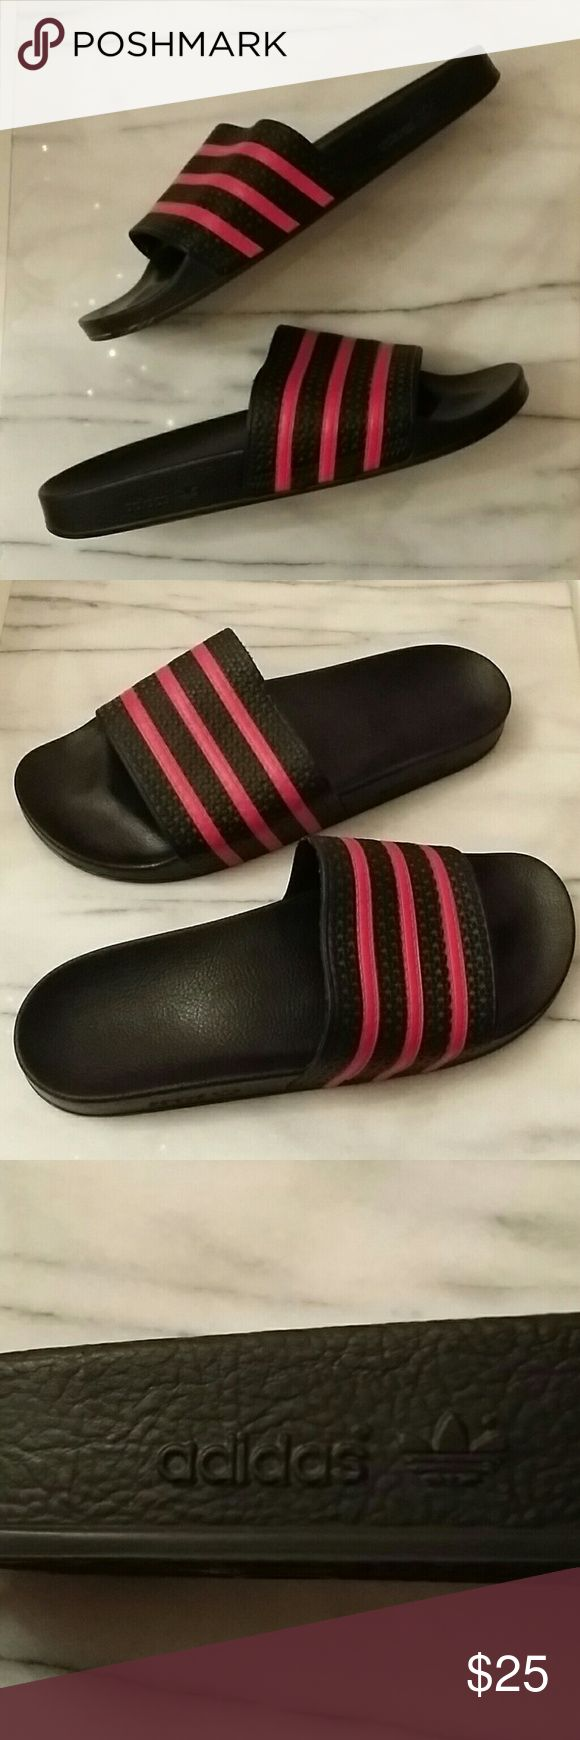 adidas shoes pink adidas sandals for men